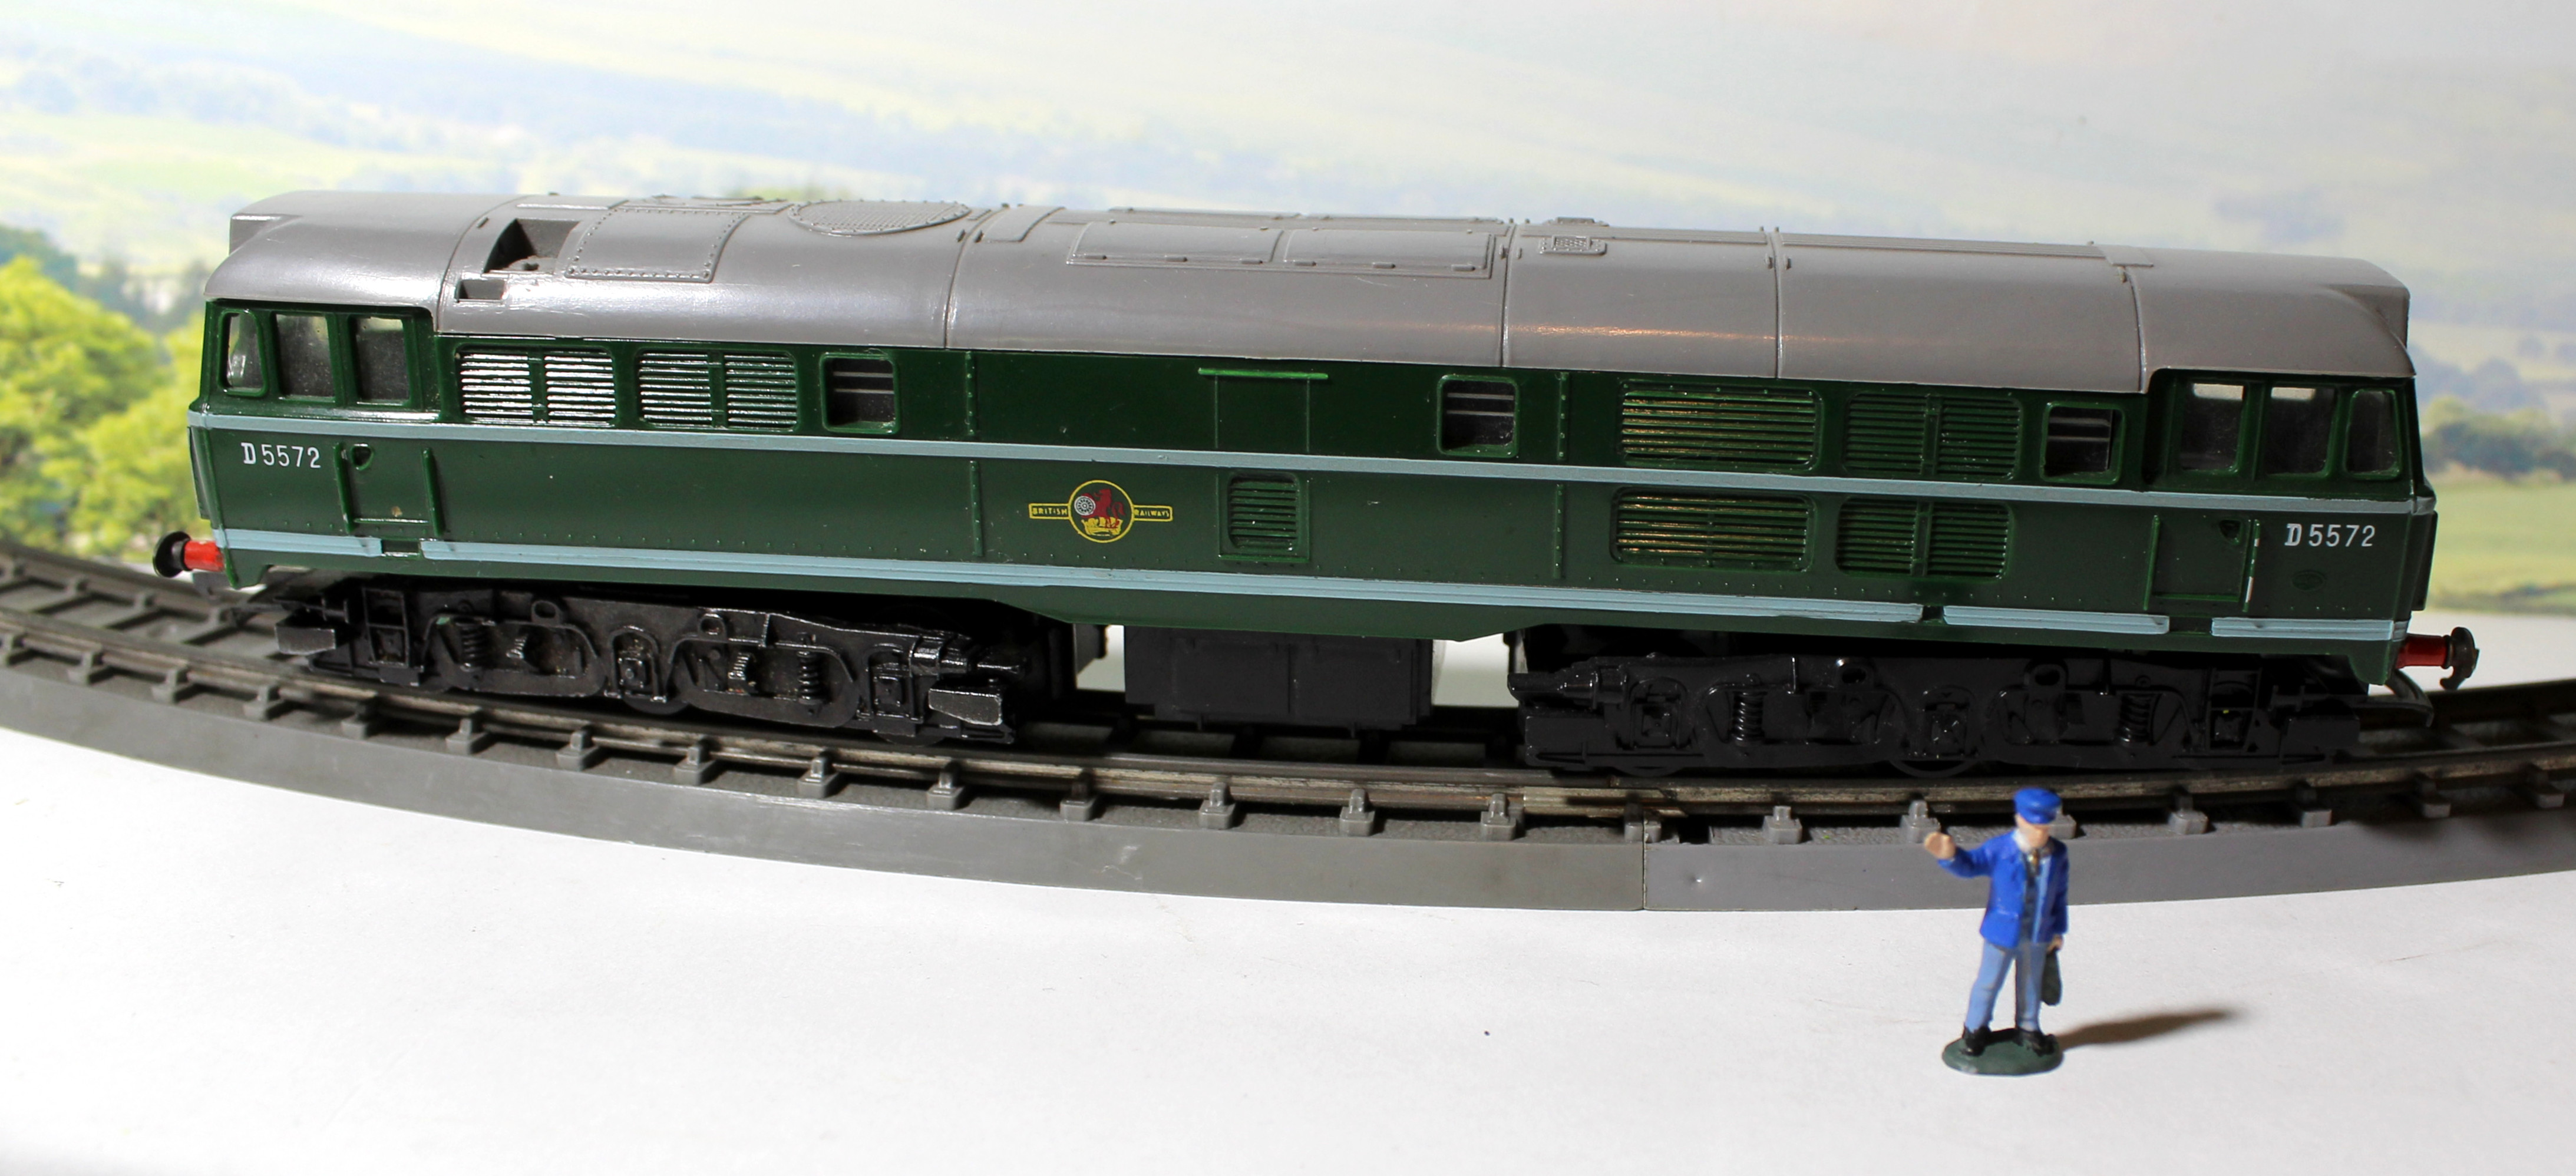 Retro review the Triang class 33